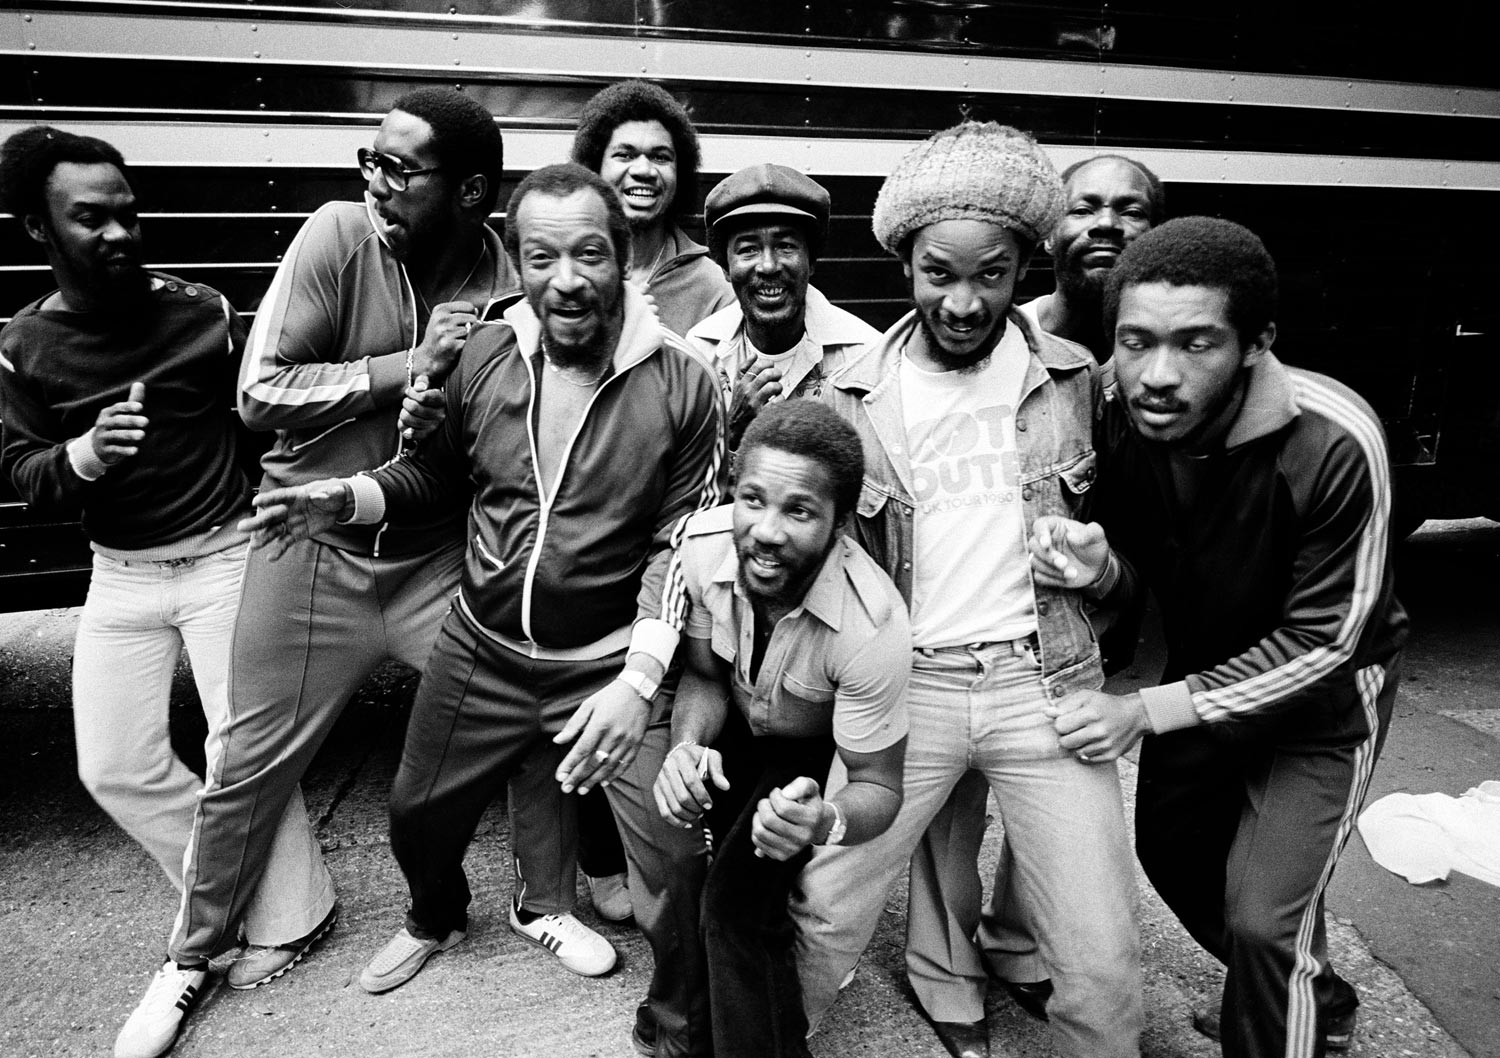 Toots Hibbert and the Maytals, 1981. Photograph by Urbanimage.tv